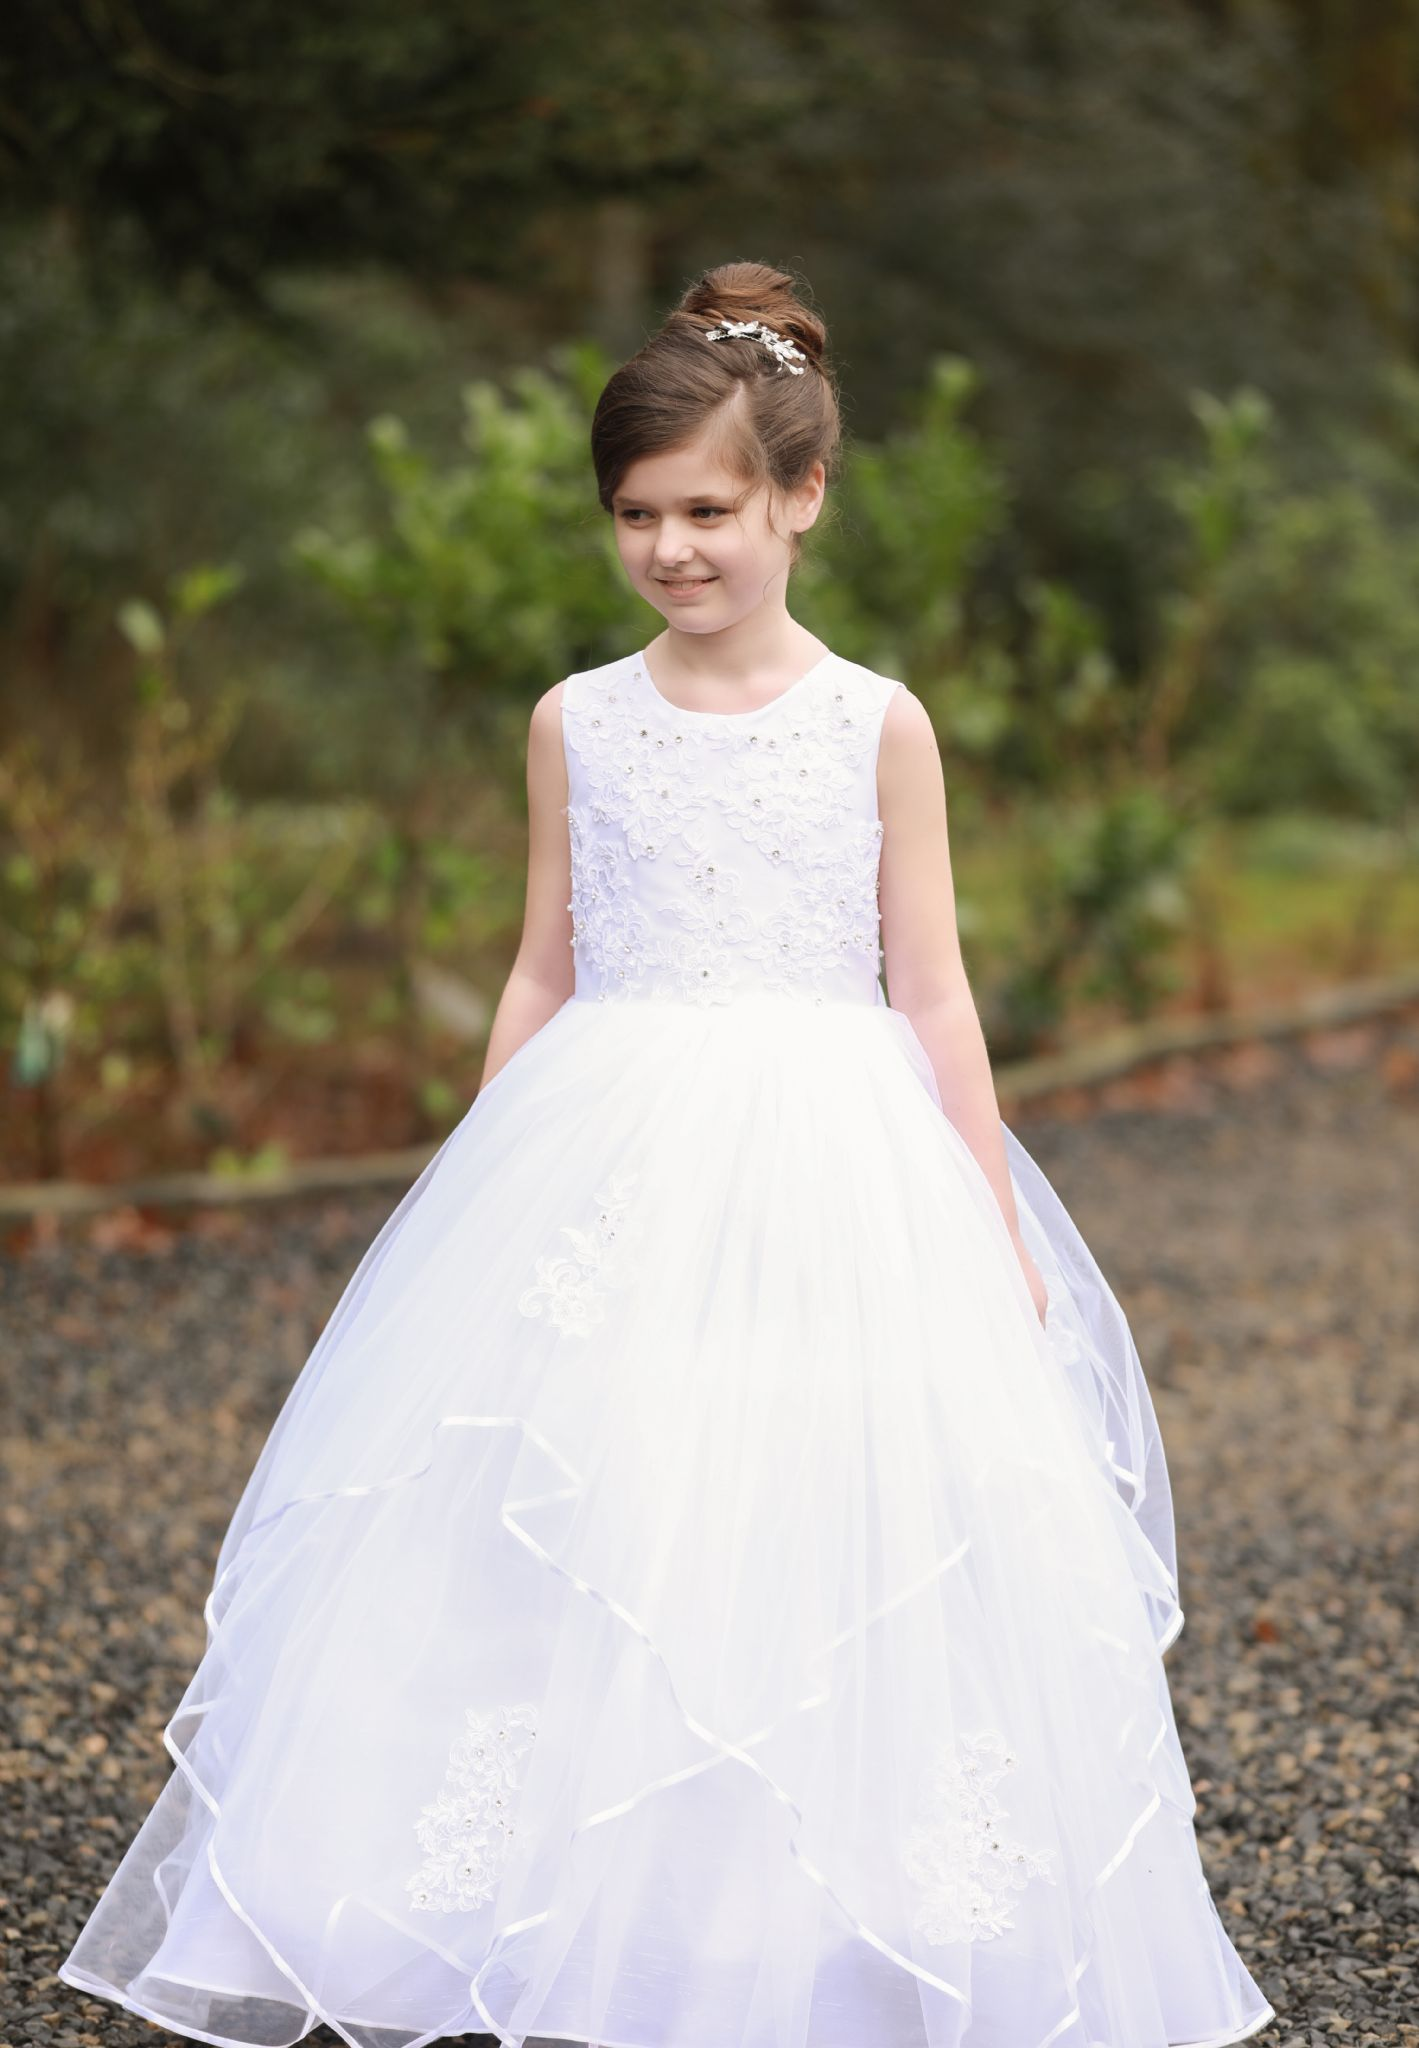 d2a255500c3 10 years - Communion Dresses for 10 year olds - Age   Size 10 yrs ...